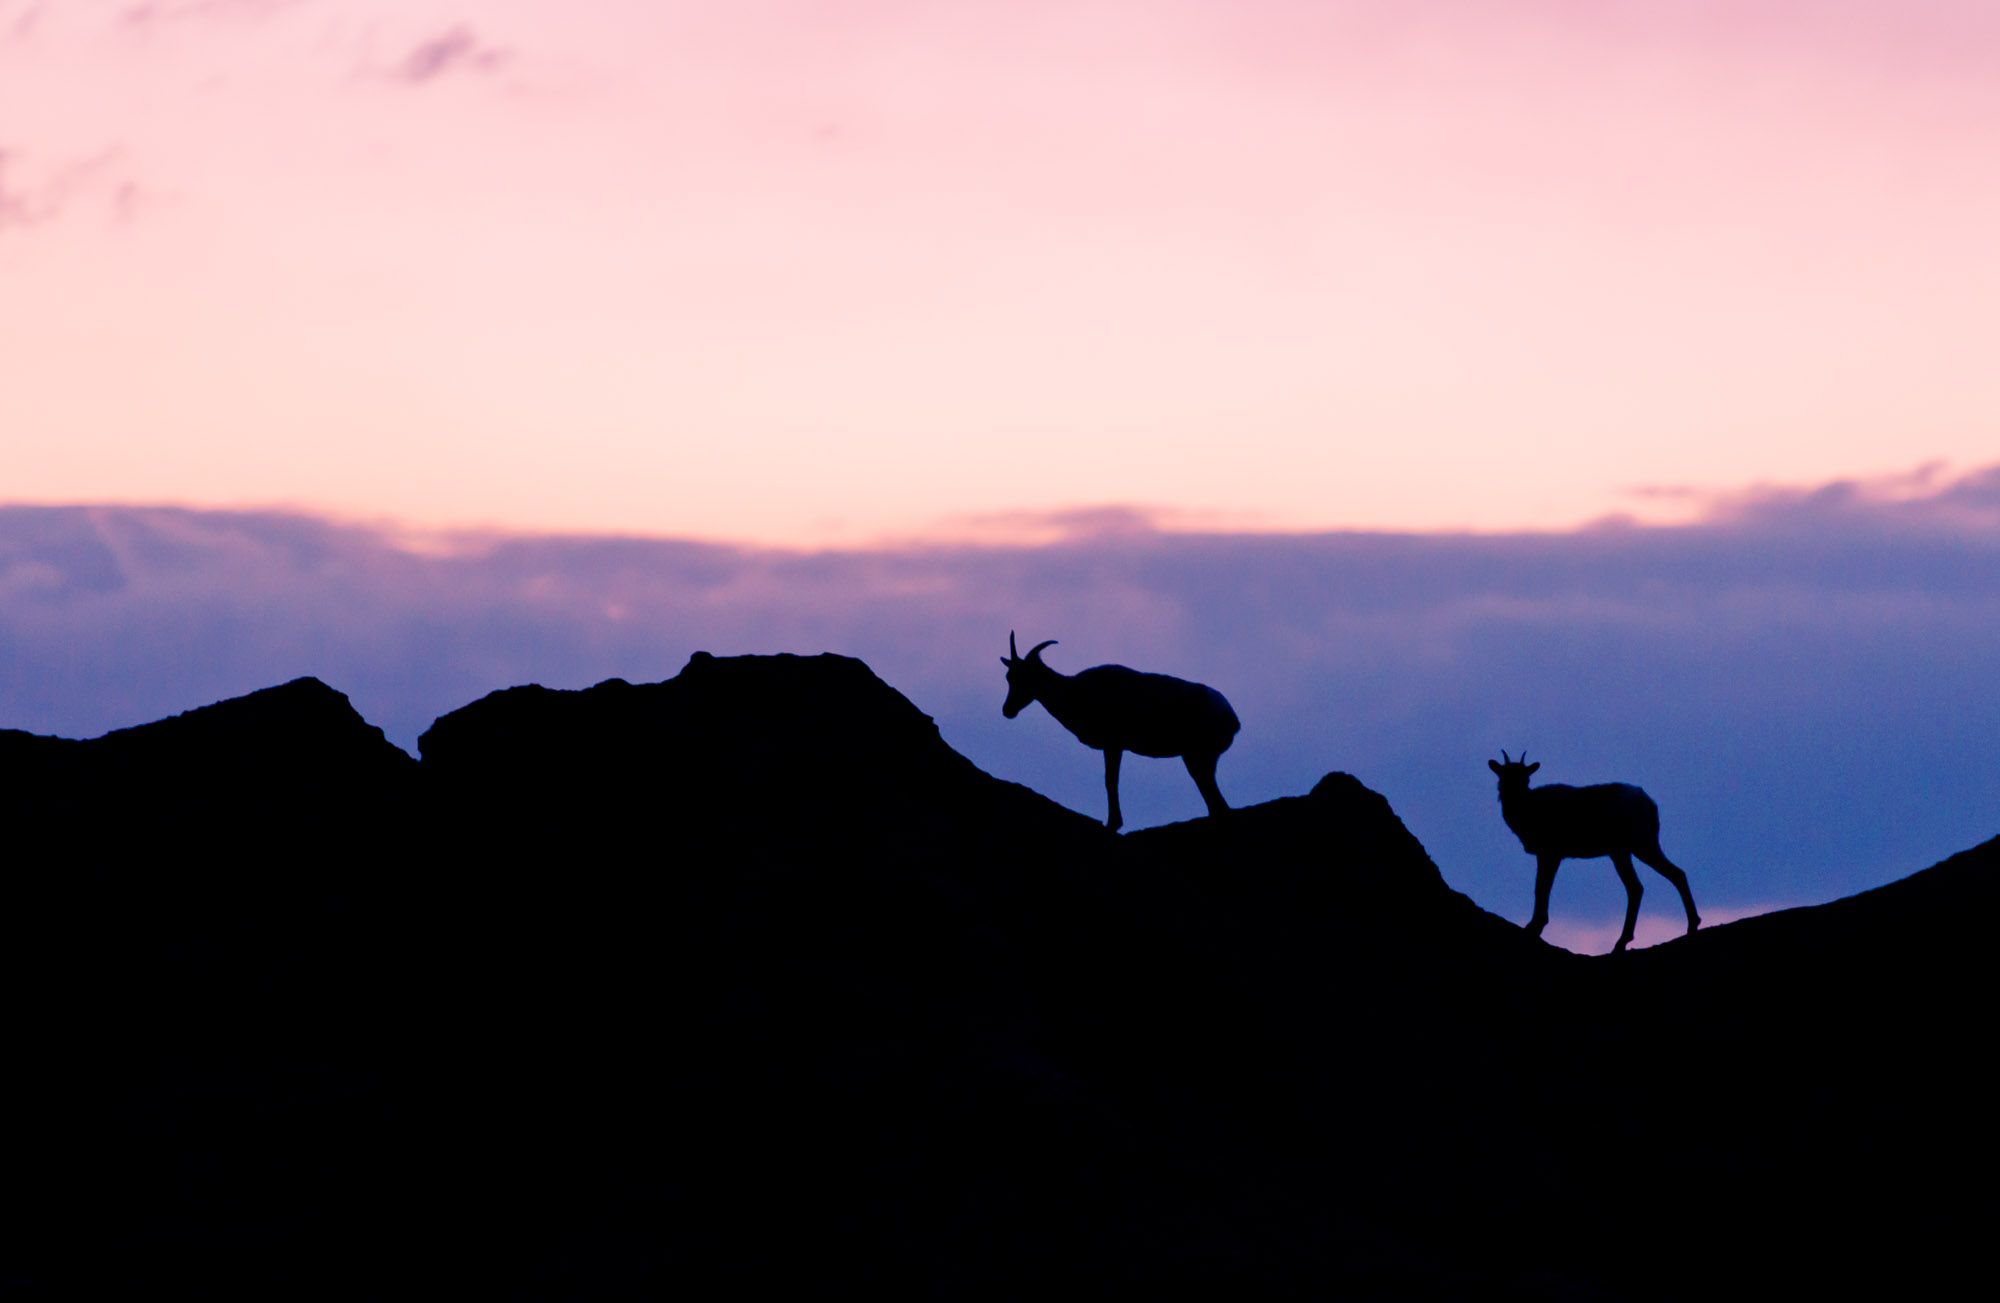 Bighorn Sheep silhouetted at dusk - Badlands National Park, South Dakota